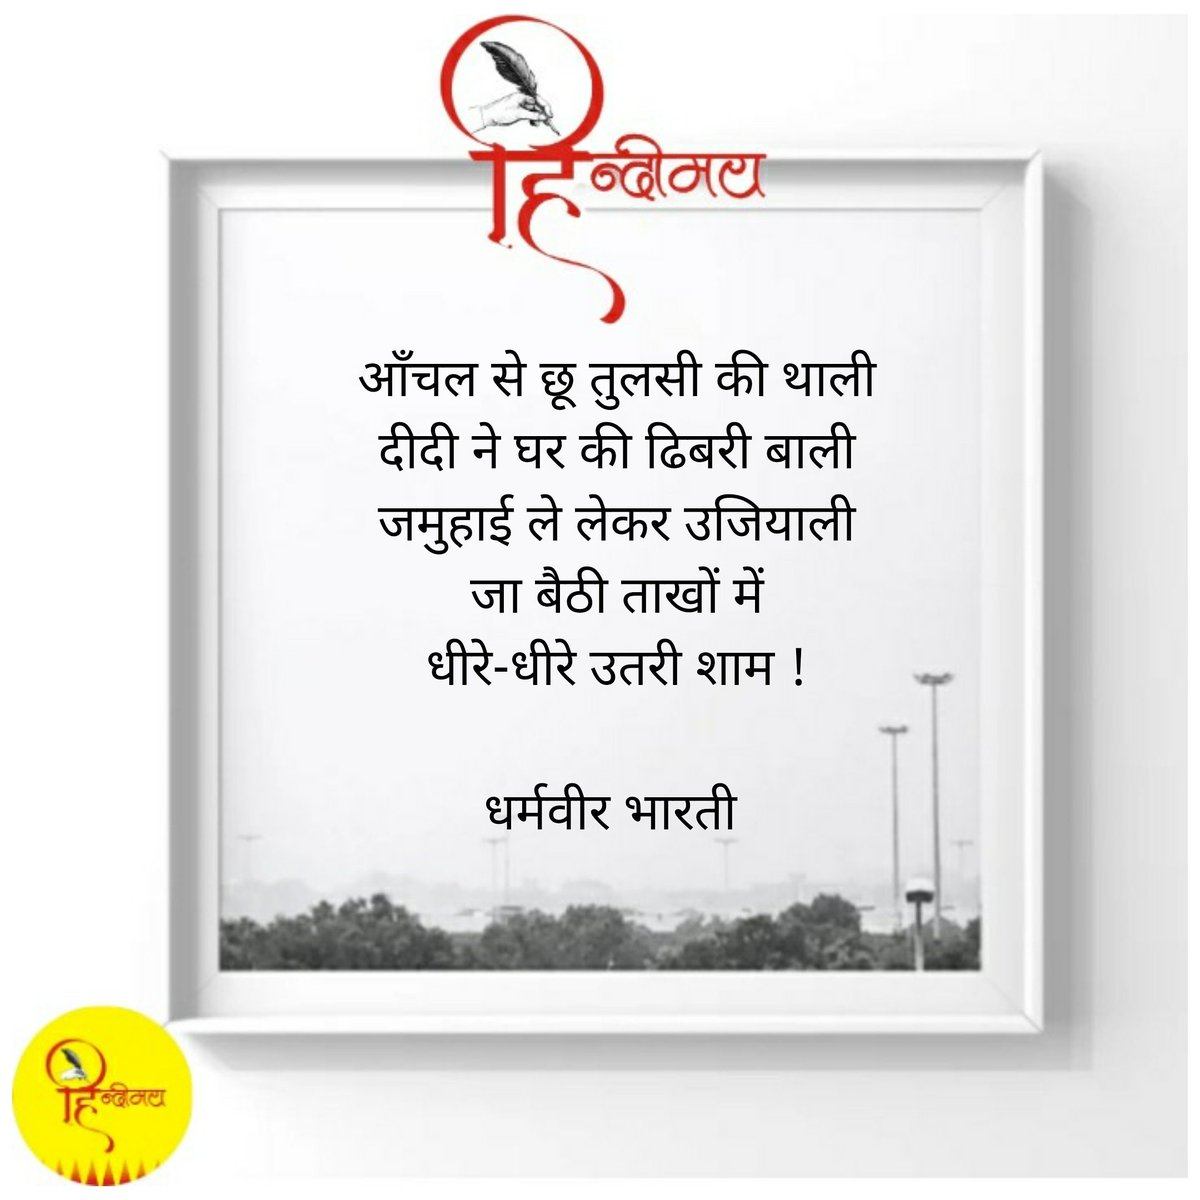 "पढ़ें धर्मवीर भारती की कविता ""उतरी शाम""  https://t.co/1sBsv8g4BN https://t.co/N7yKAQxGbA  #poetrycommunity #hindimay #Hindi #POEMS #hindipoem #UrduPoetry #LiteraturePosts #literatureofindia #India https://t.co/jjQccaTigO https://t.co/JnqLRyXP5f"